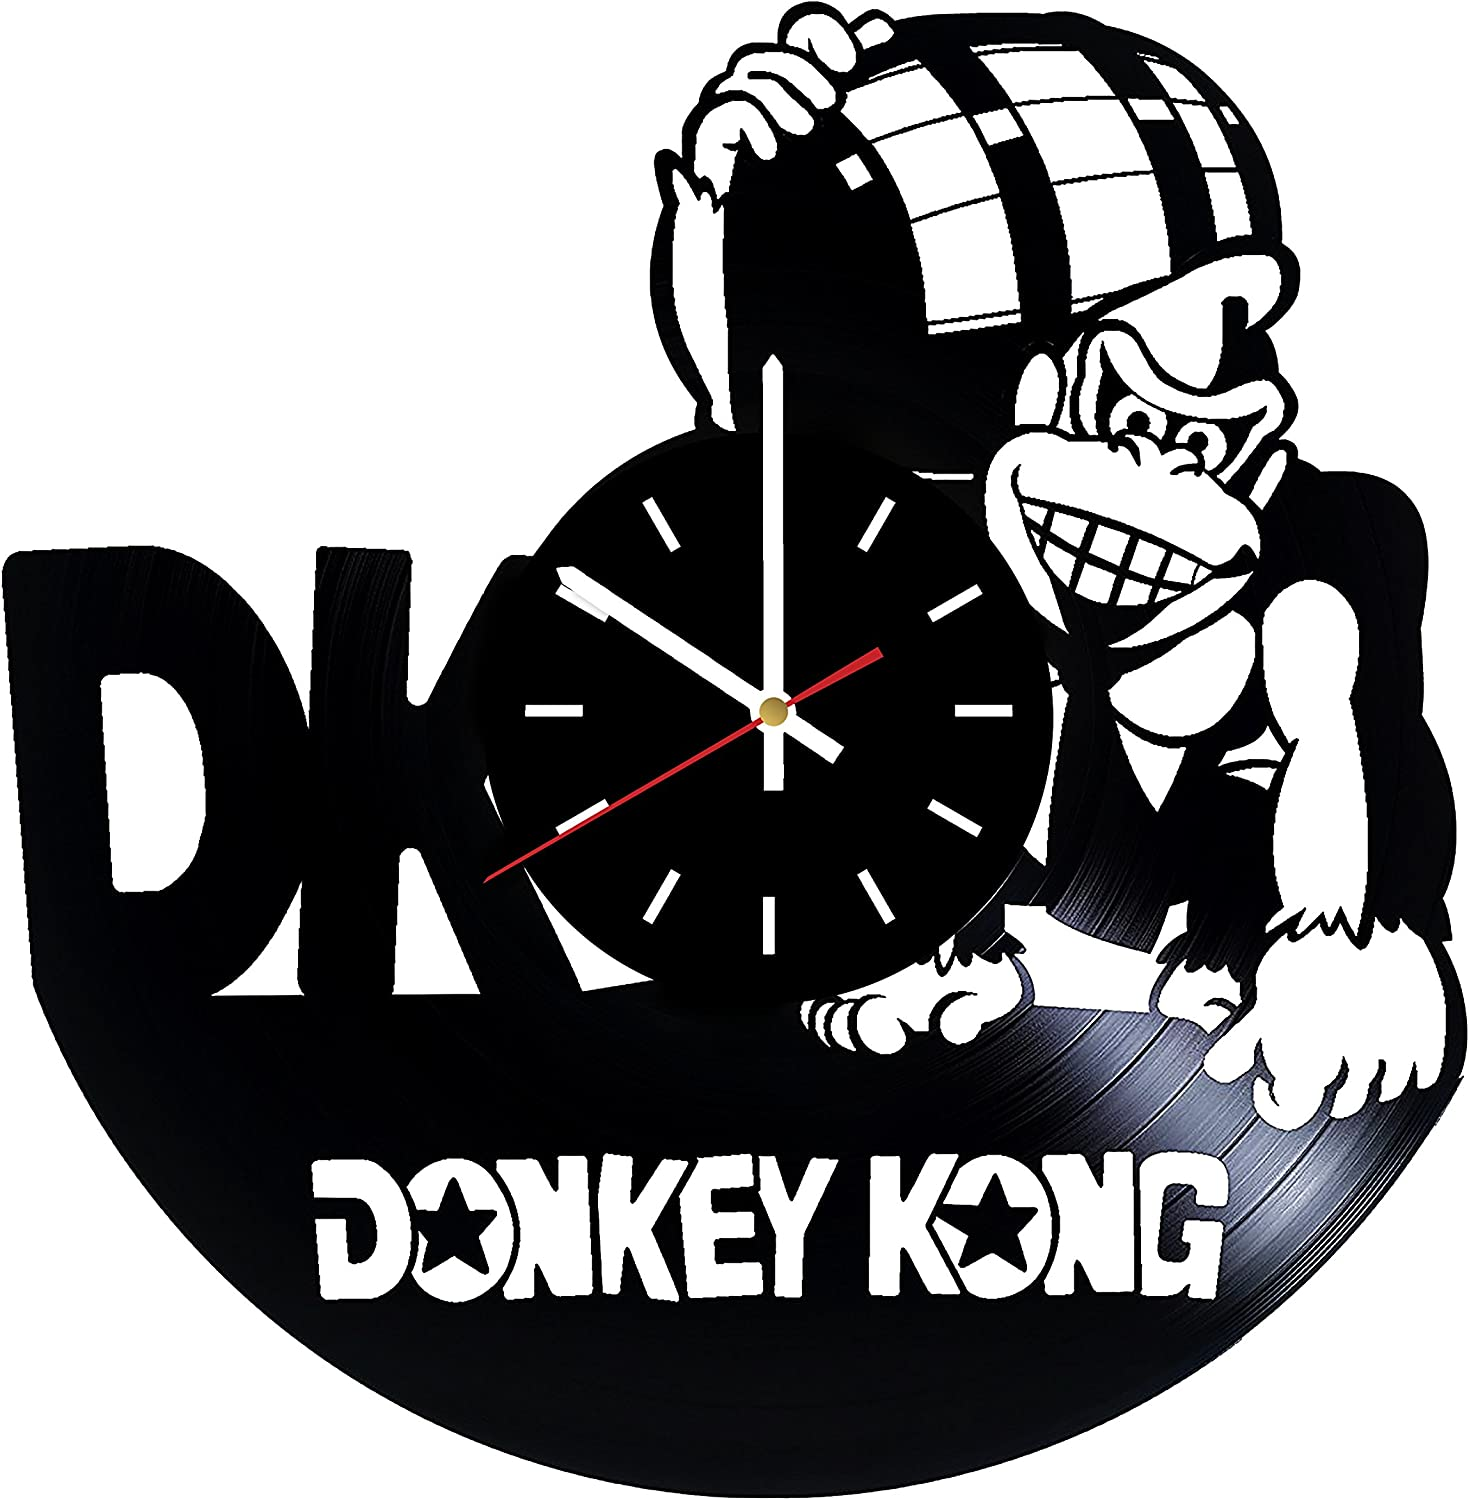 Everyday Arts Donkey Kong Video Games Design Vinyl Record Wall Clock - Get Unique Bedroom or Garage Wall Decor - Gift Ideas for Friends, Brother - Darth Vader Unique Modern Art